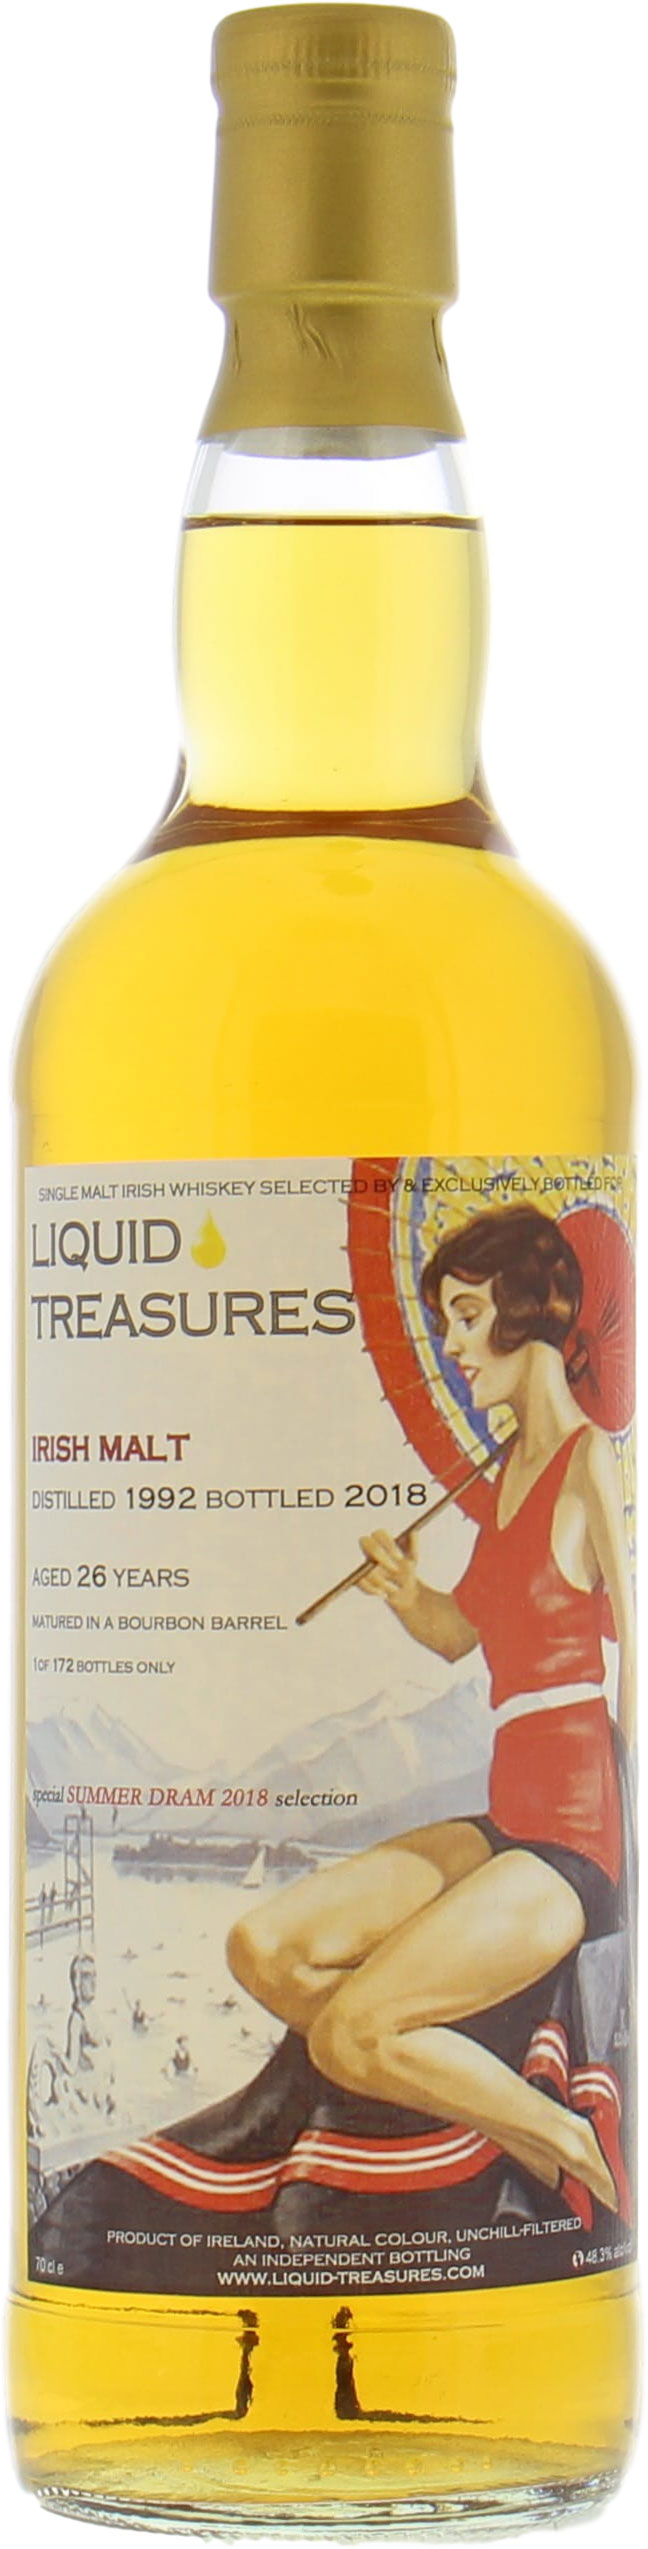 26 Years Old Liquid Treasures Special Summer Dram 2018 Selection 48.3%